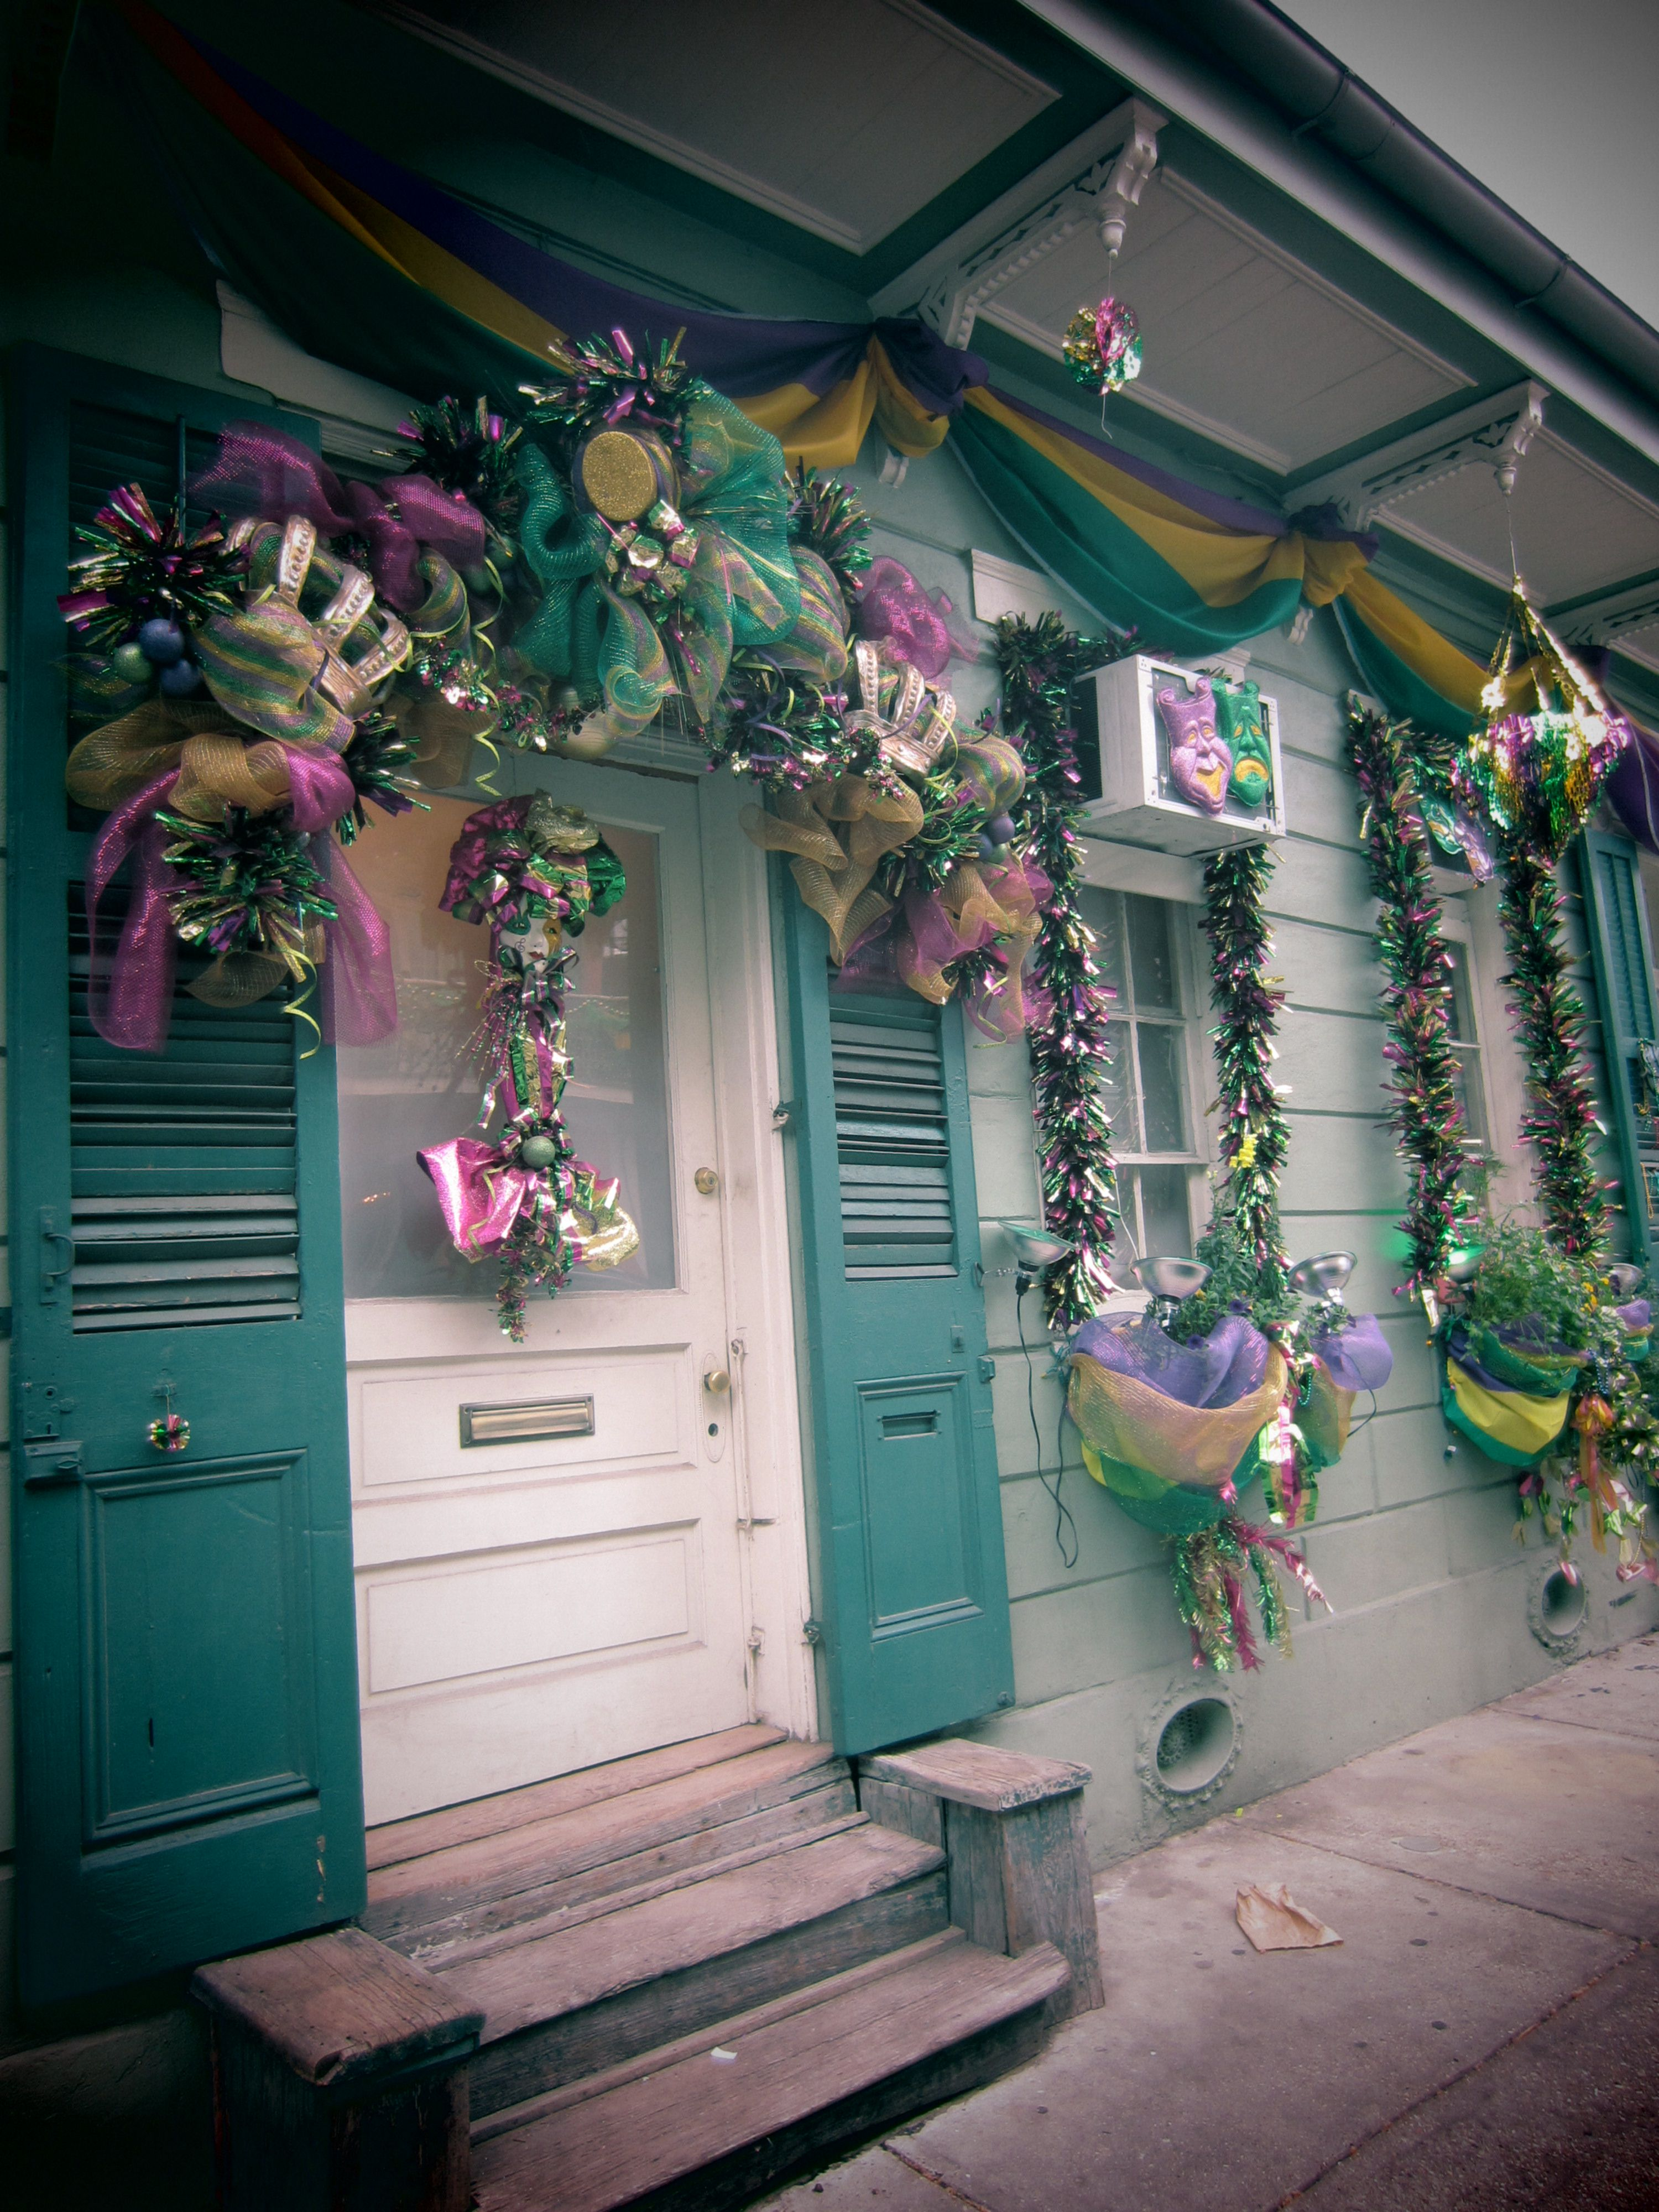 Mardi Gras House Decorations Ideas Visit Our Blog At Www Zdhomes For Interesting